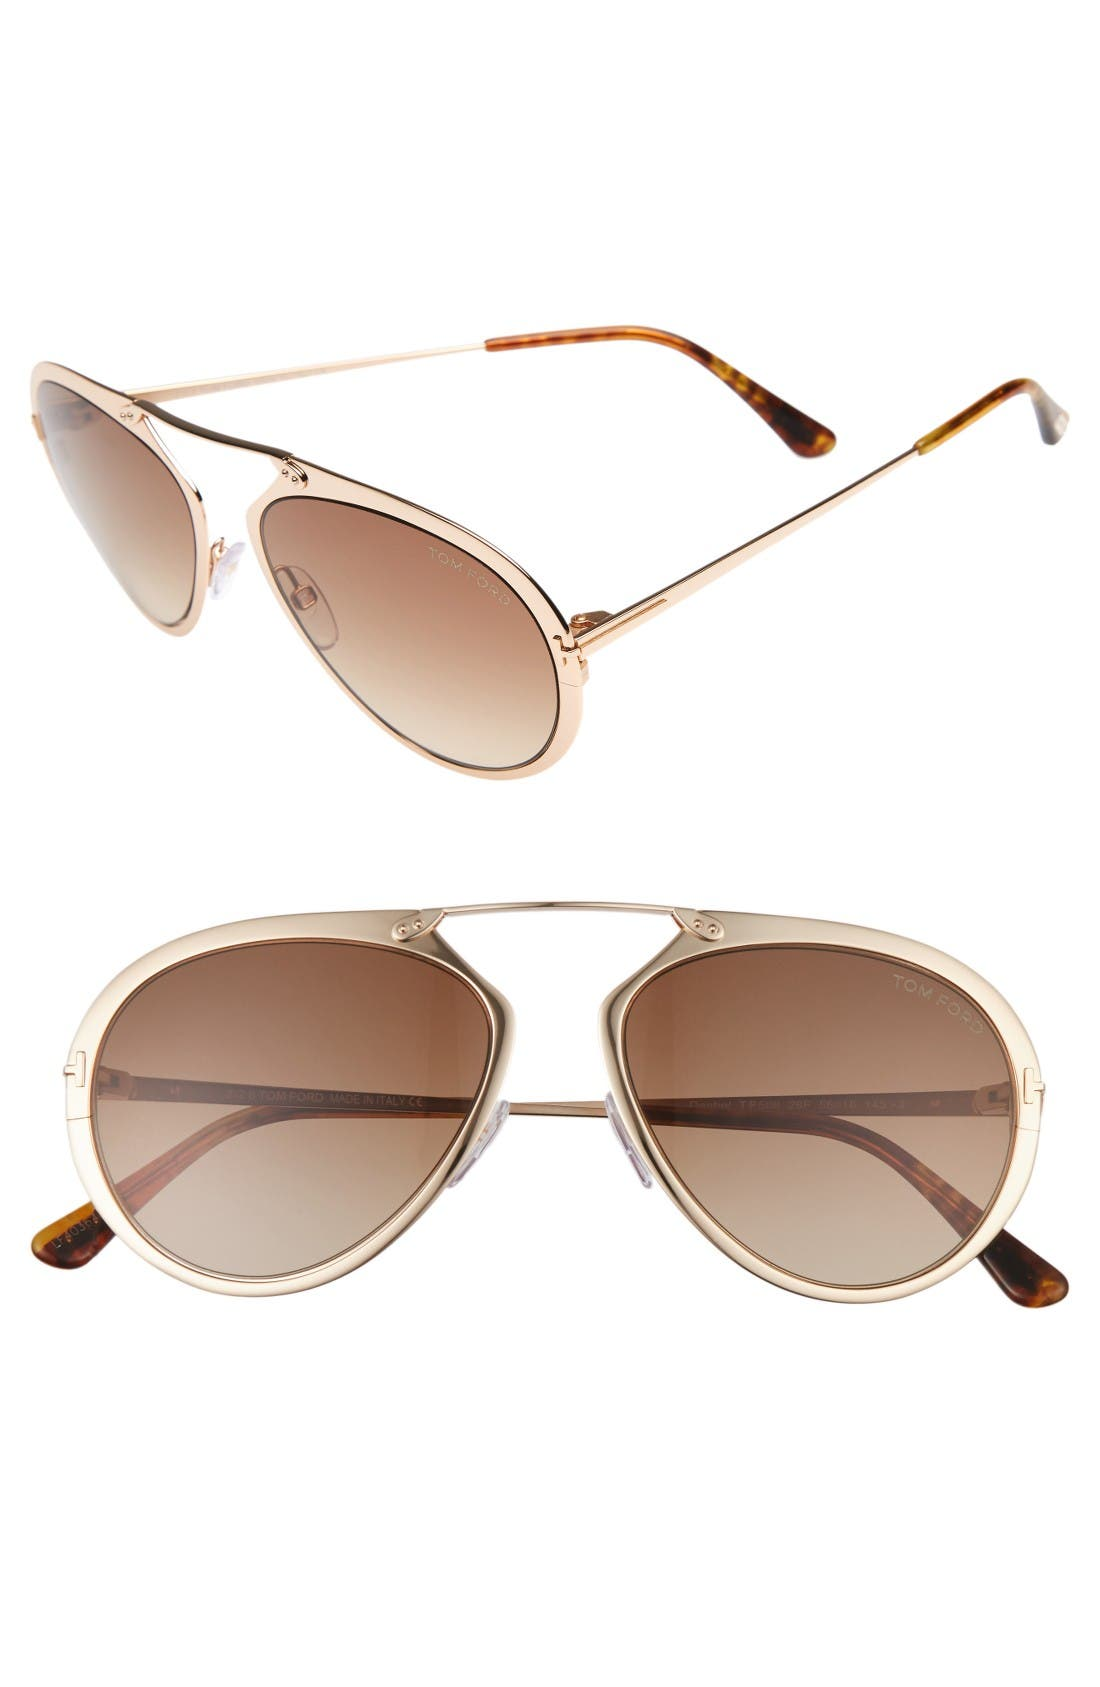 Dashel 55mm Sunglasses,                         Main,                         color, Rose Gold/ Yellow/ Brown